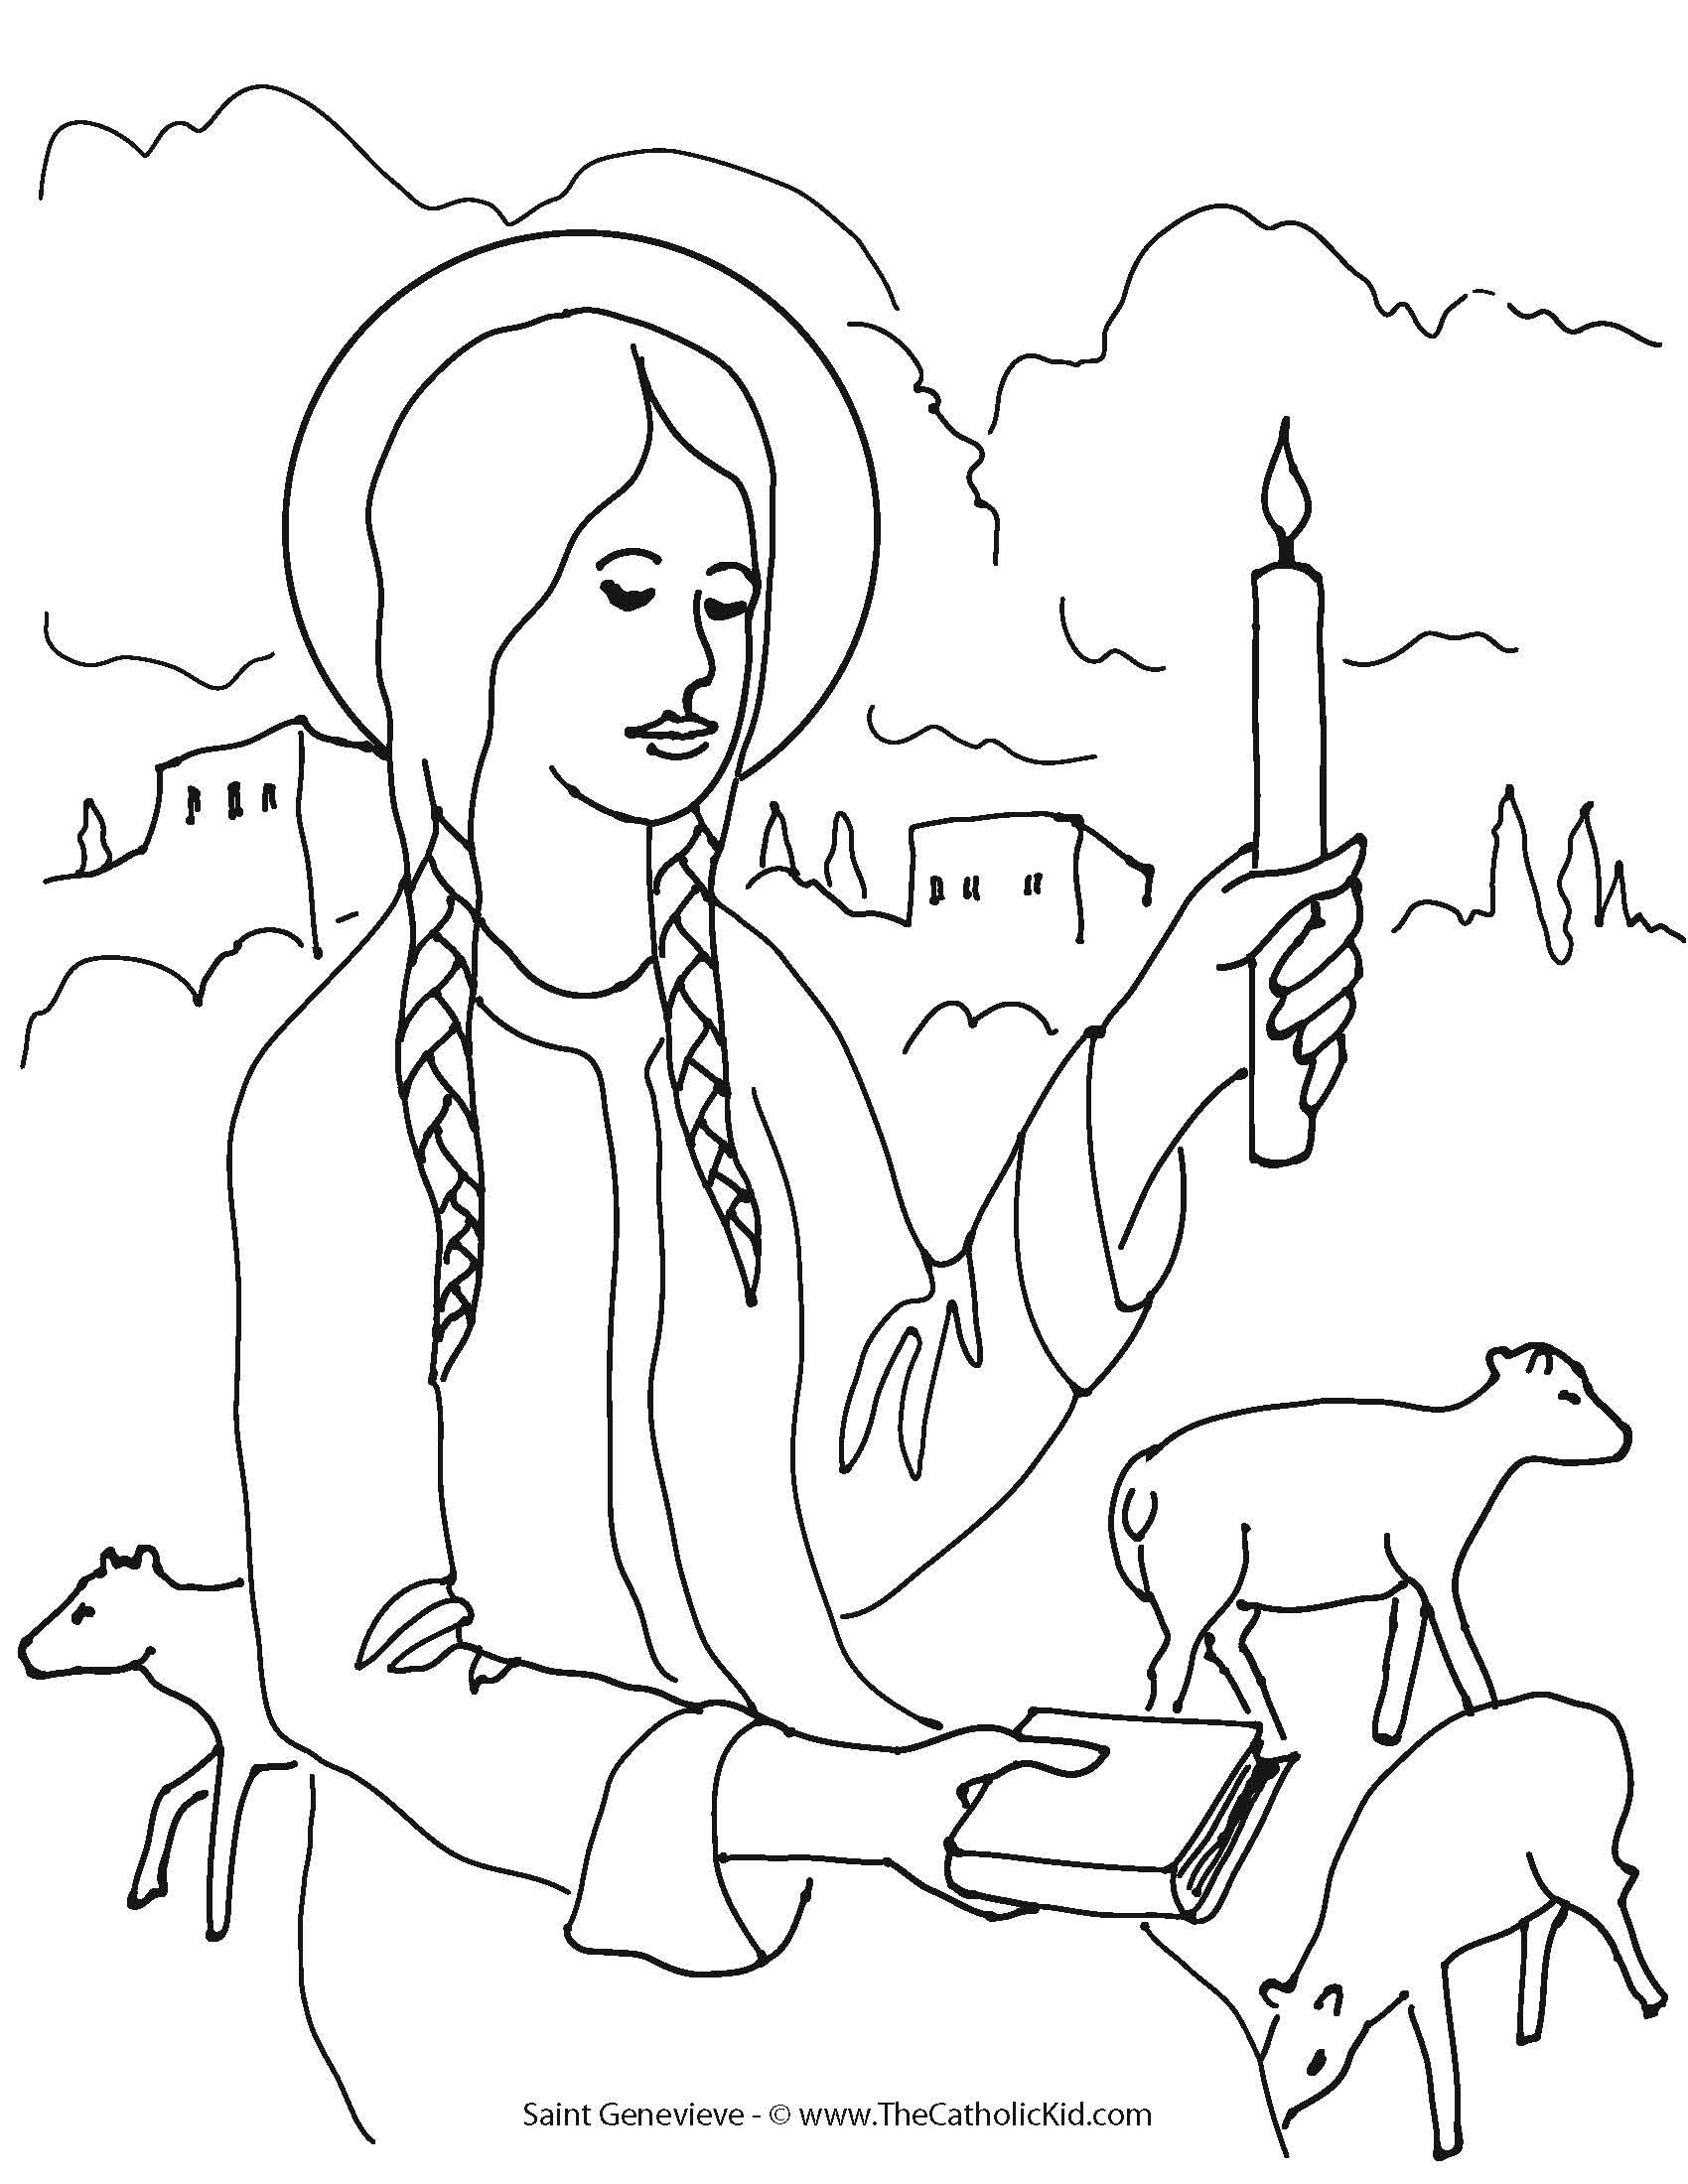 st genevieve our saint of the month thecatholickidcom st genevieve catholic kidscommunionsaintscoloring - St Patrick Coloring Page Catholic